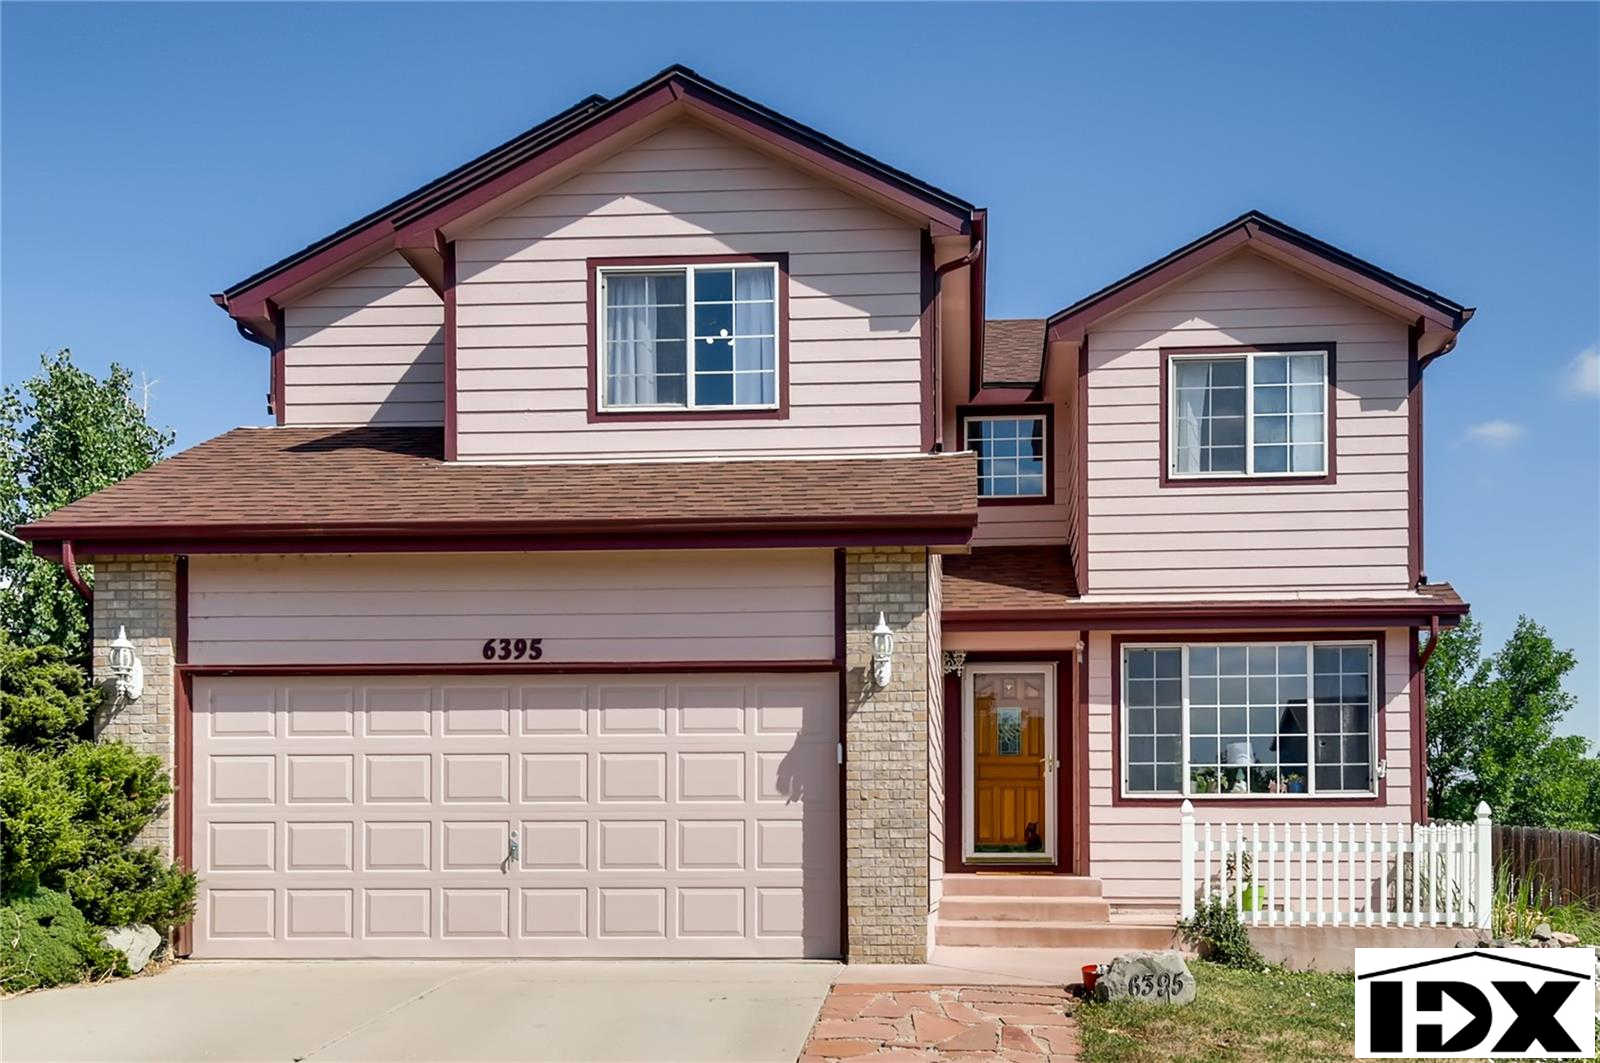 6395 East 121st Drive, Brighton, CO 80602 has an Open House on  Saturday, August 31, 2019 12:00 PM to 2:00 PM